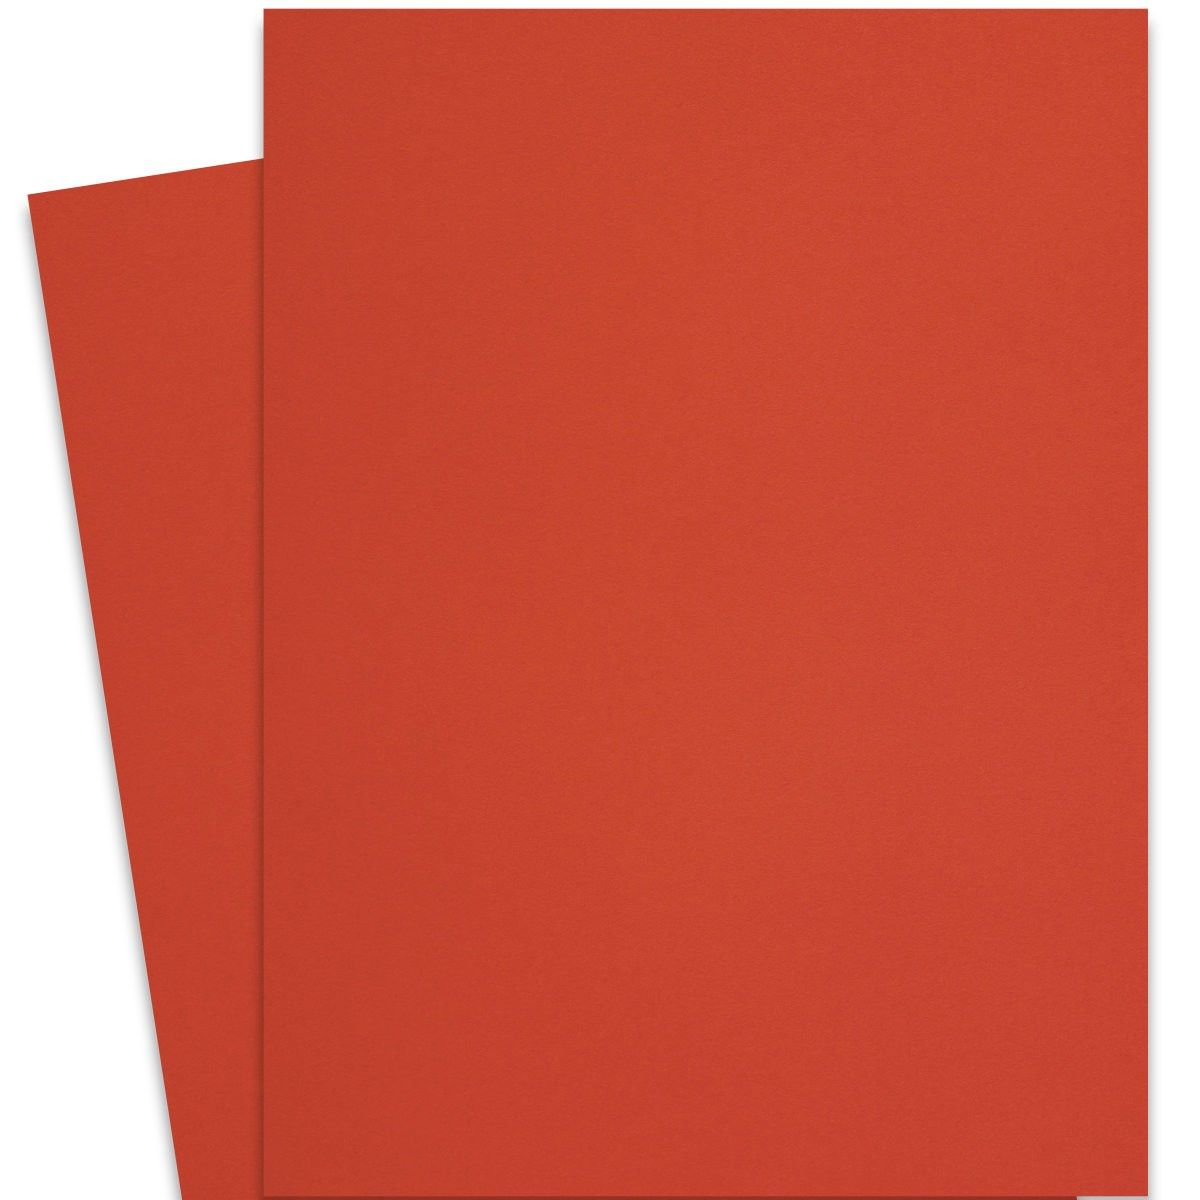 Clearance Curious Metallic Magma 27 X 39 Full Size Paper 118 Gsm 32 80lb Text In 2021 Paper Cardstock Paper Metallic Paper